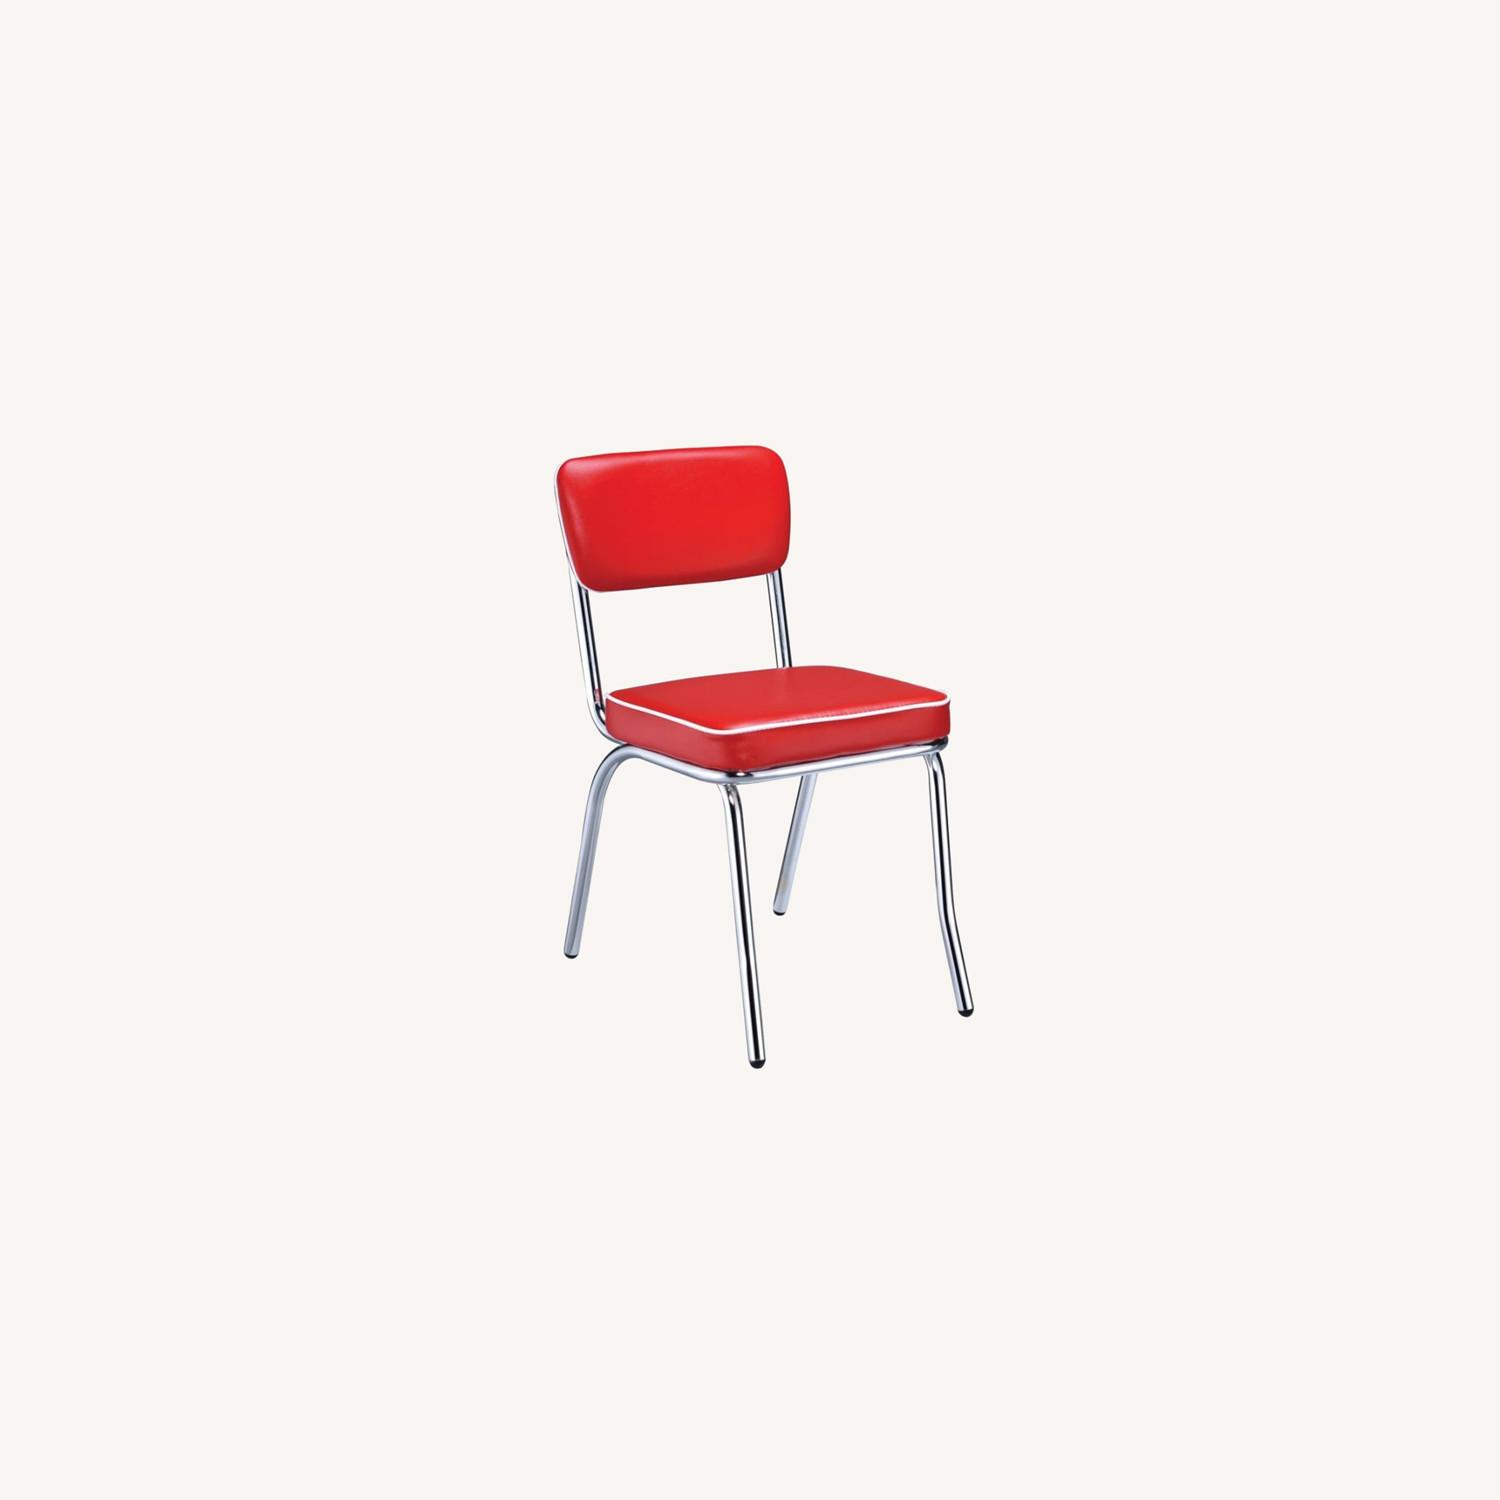 Mid-Century Style Dining Chair In Red Leatherette - image-8